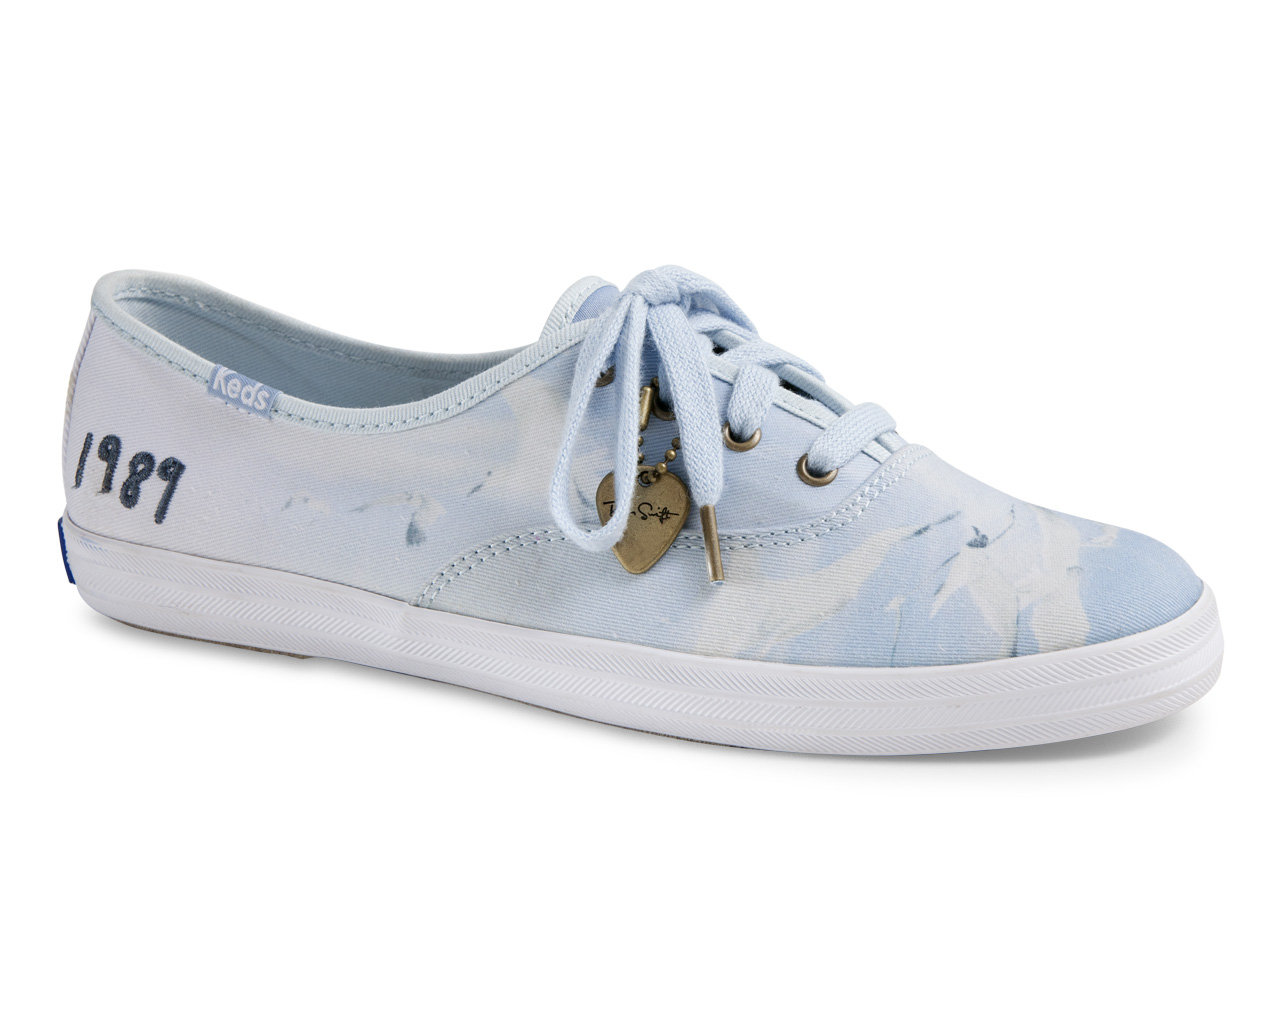 Limited Edition Collection For Keds